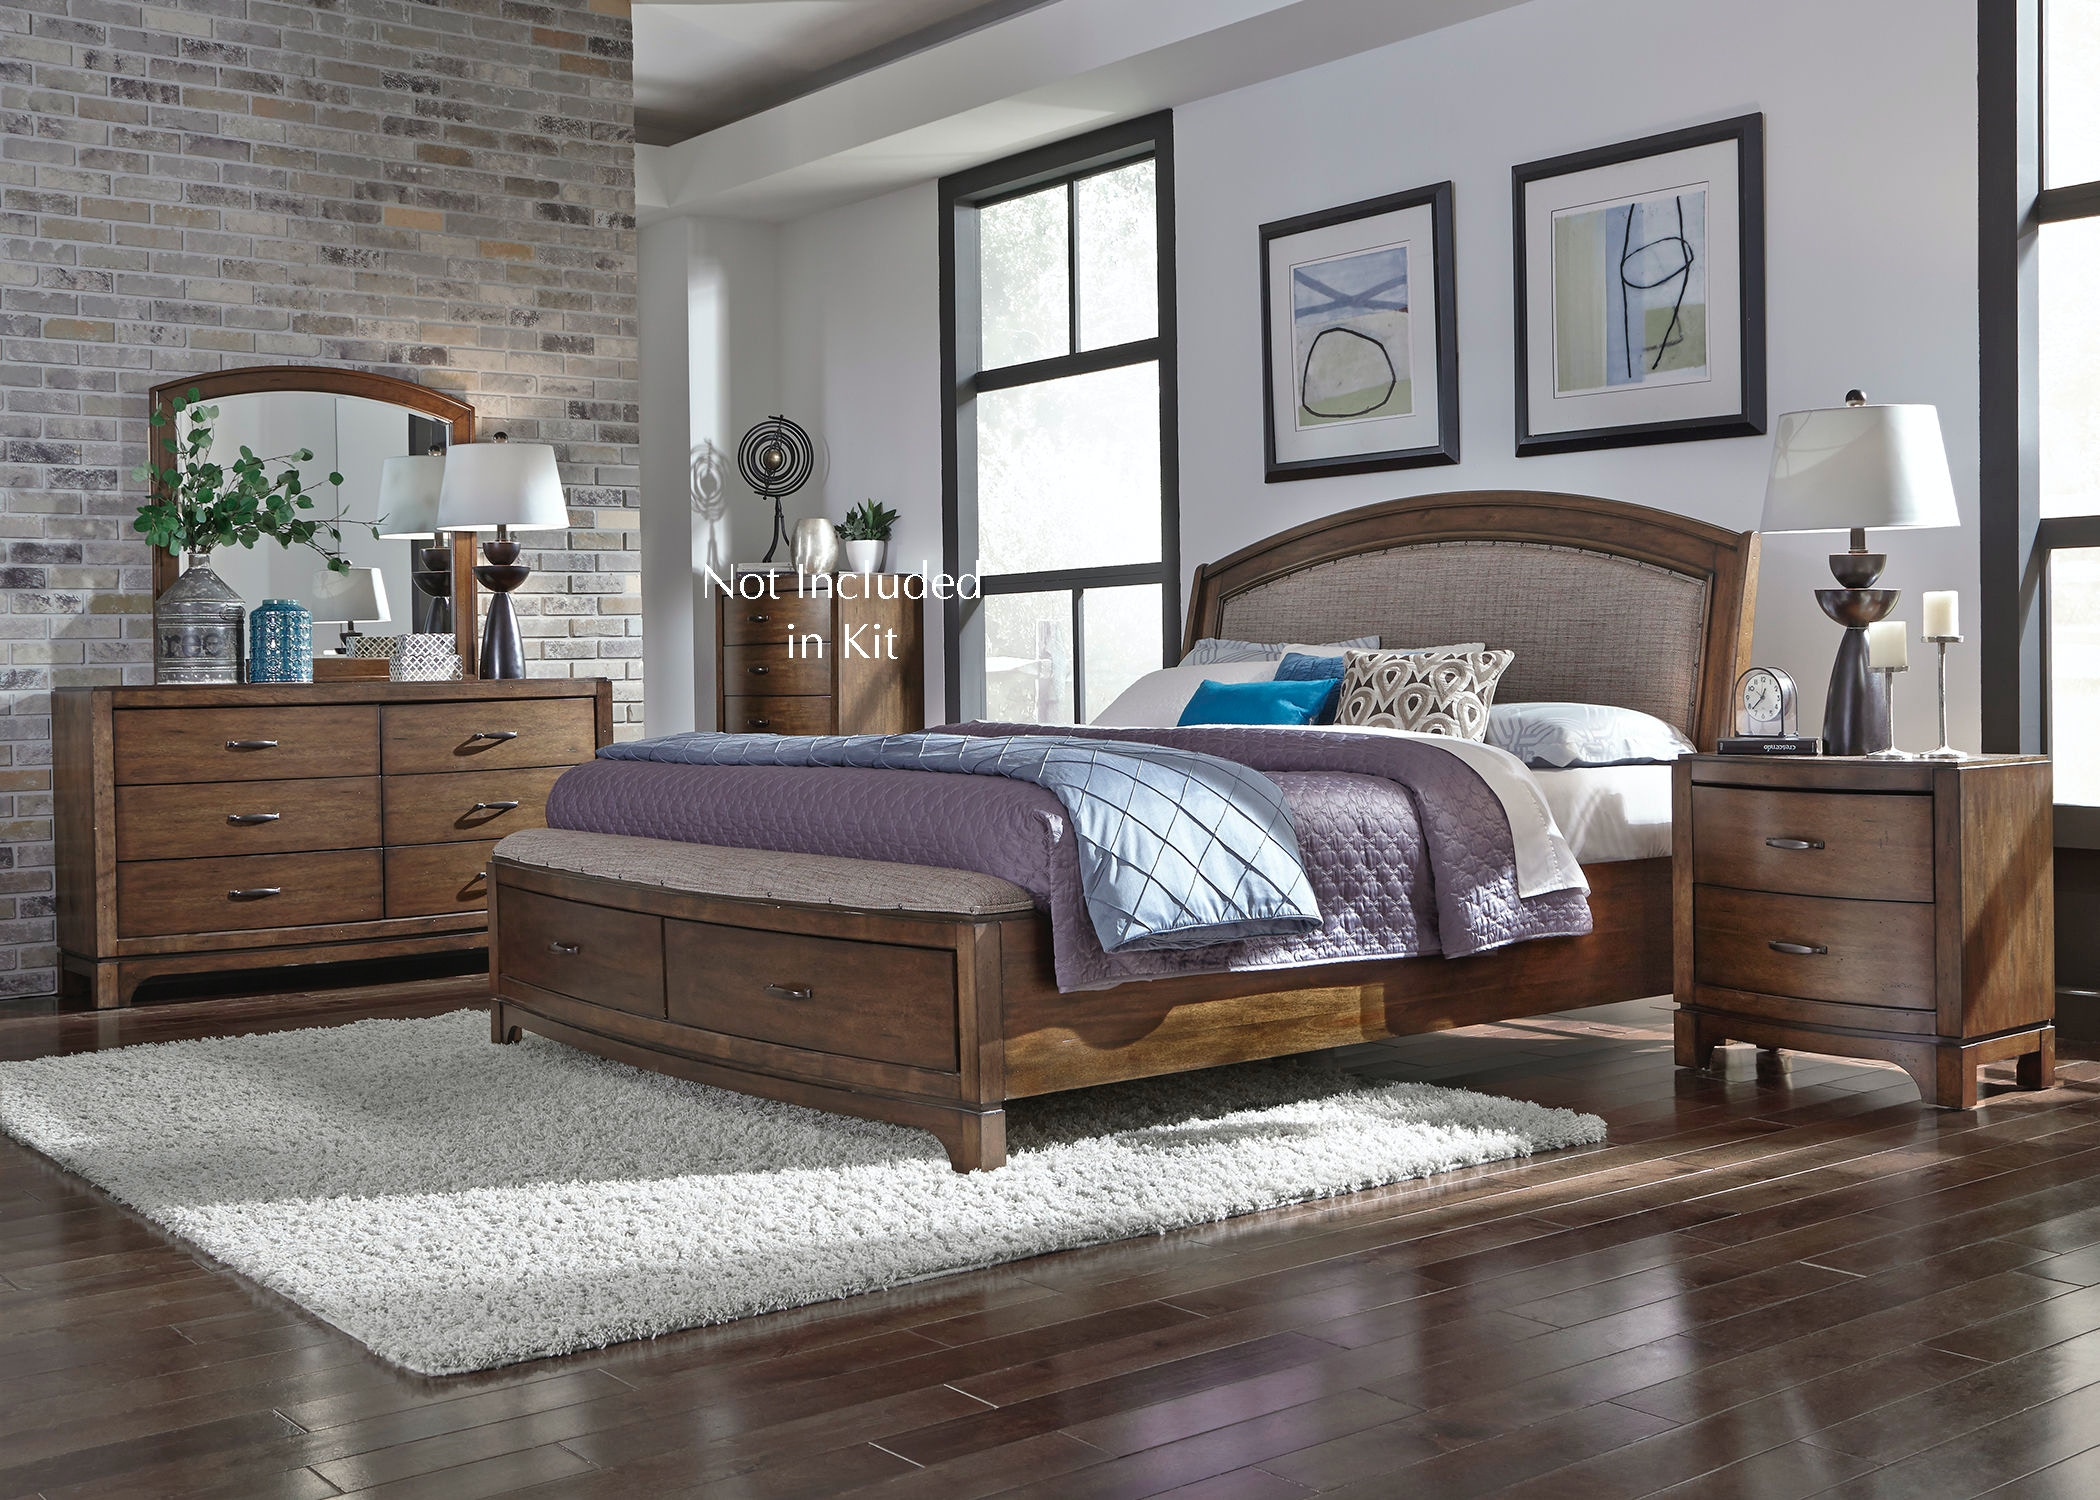 705-BR-QSBDMN. Queen Storage Bed ... & Bedroom Bedroom Sets - Davis Furniture - Poughkeepsie NY